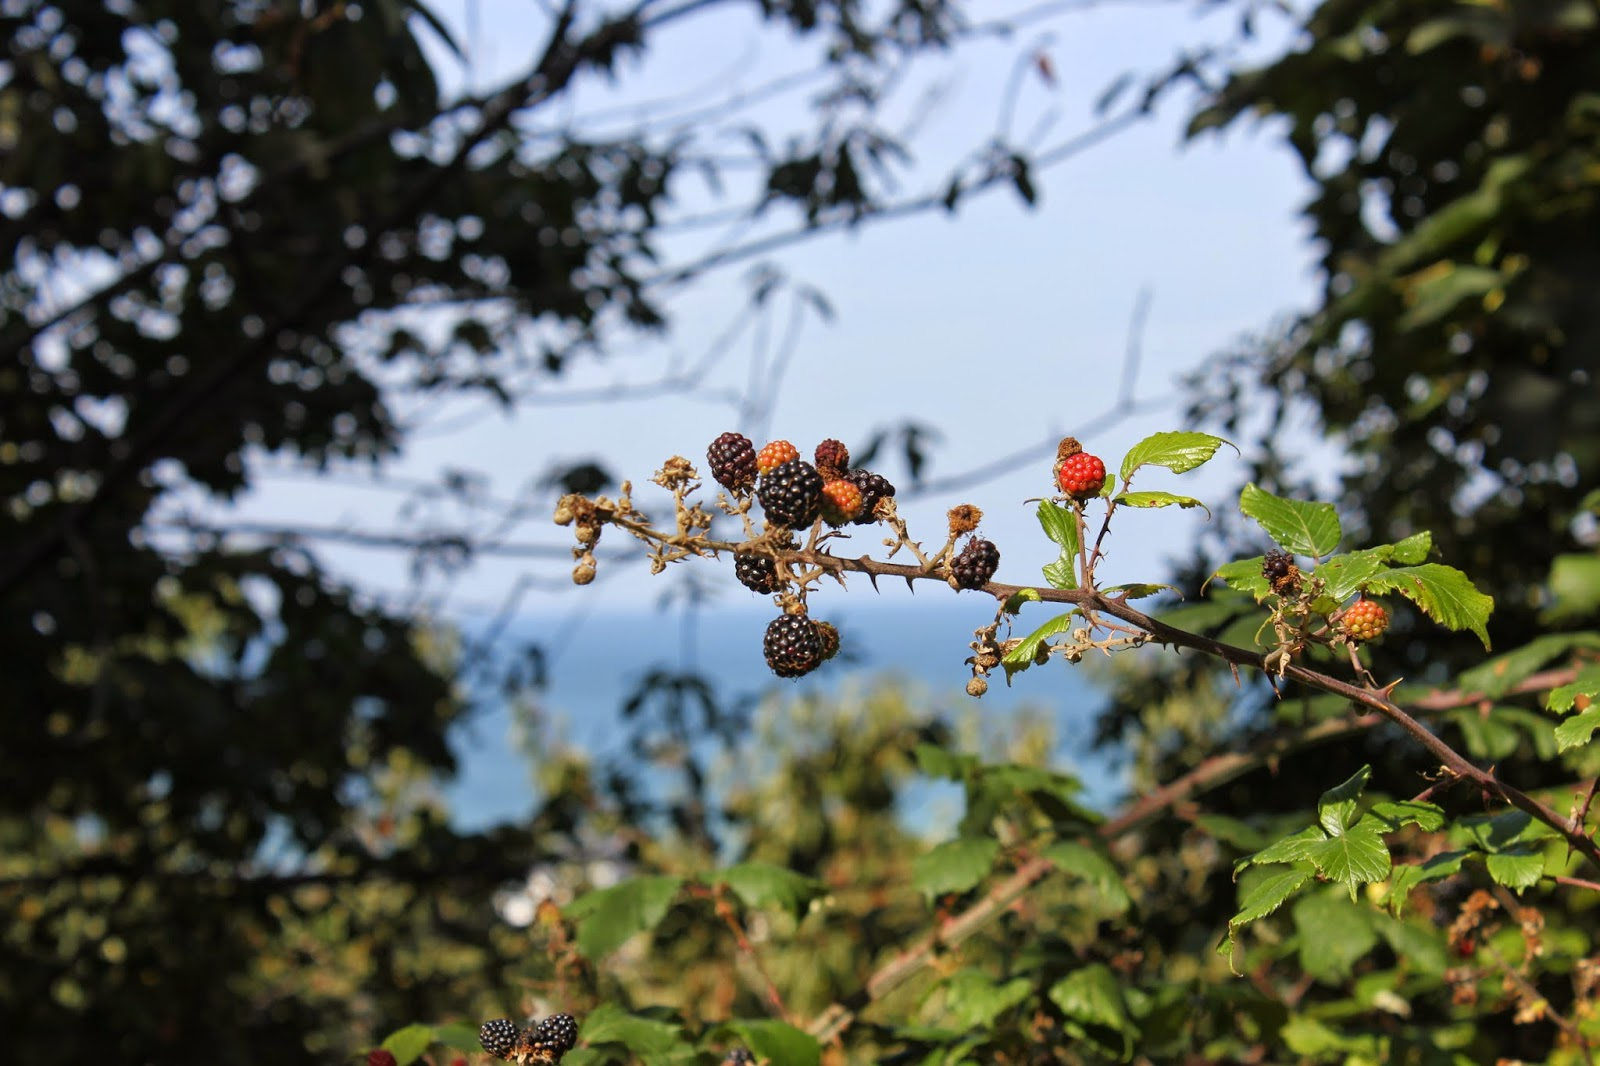 Blackberries on our coastal path